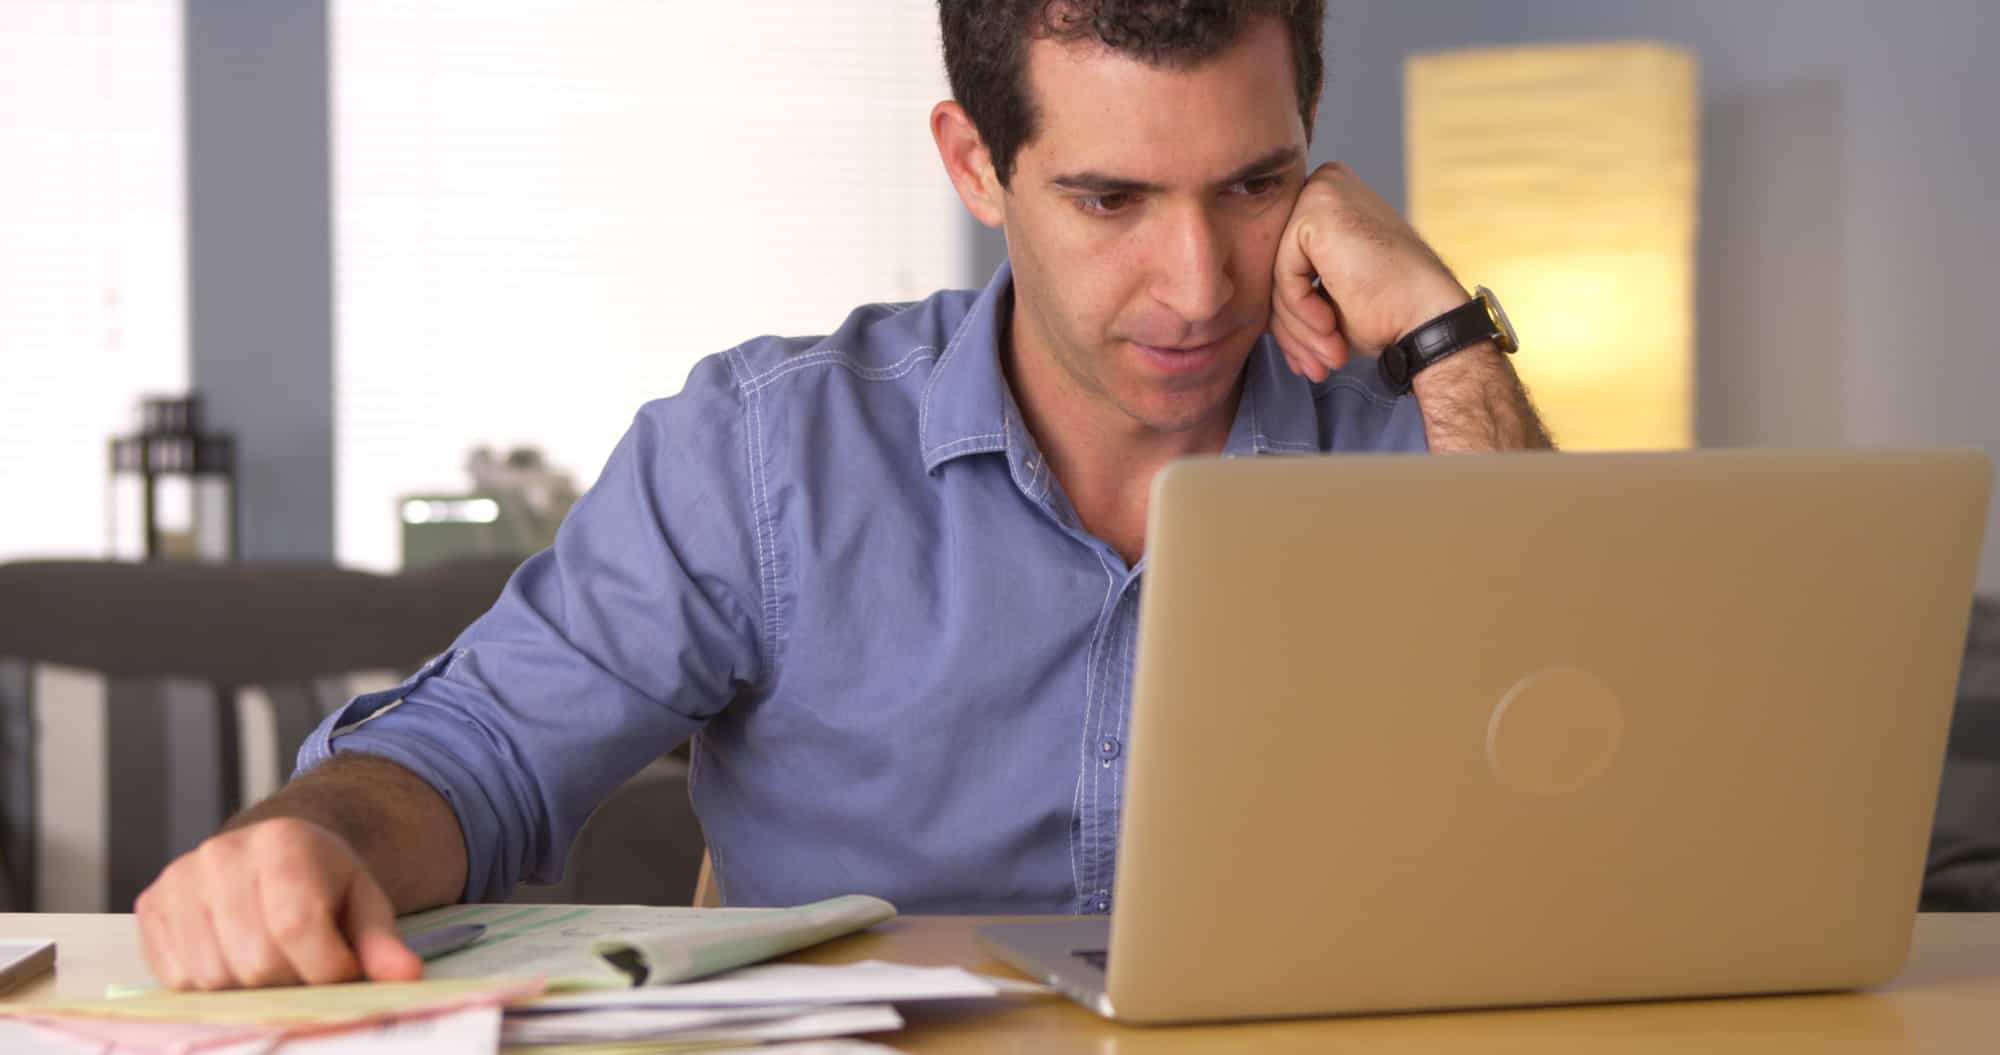 Tax accountant confused over a client's ledger and invoices